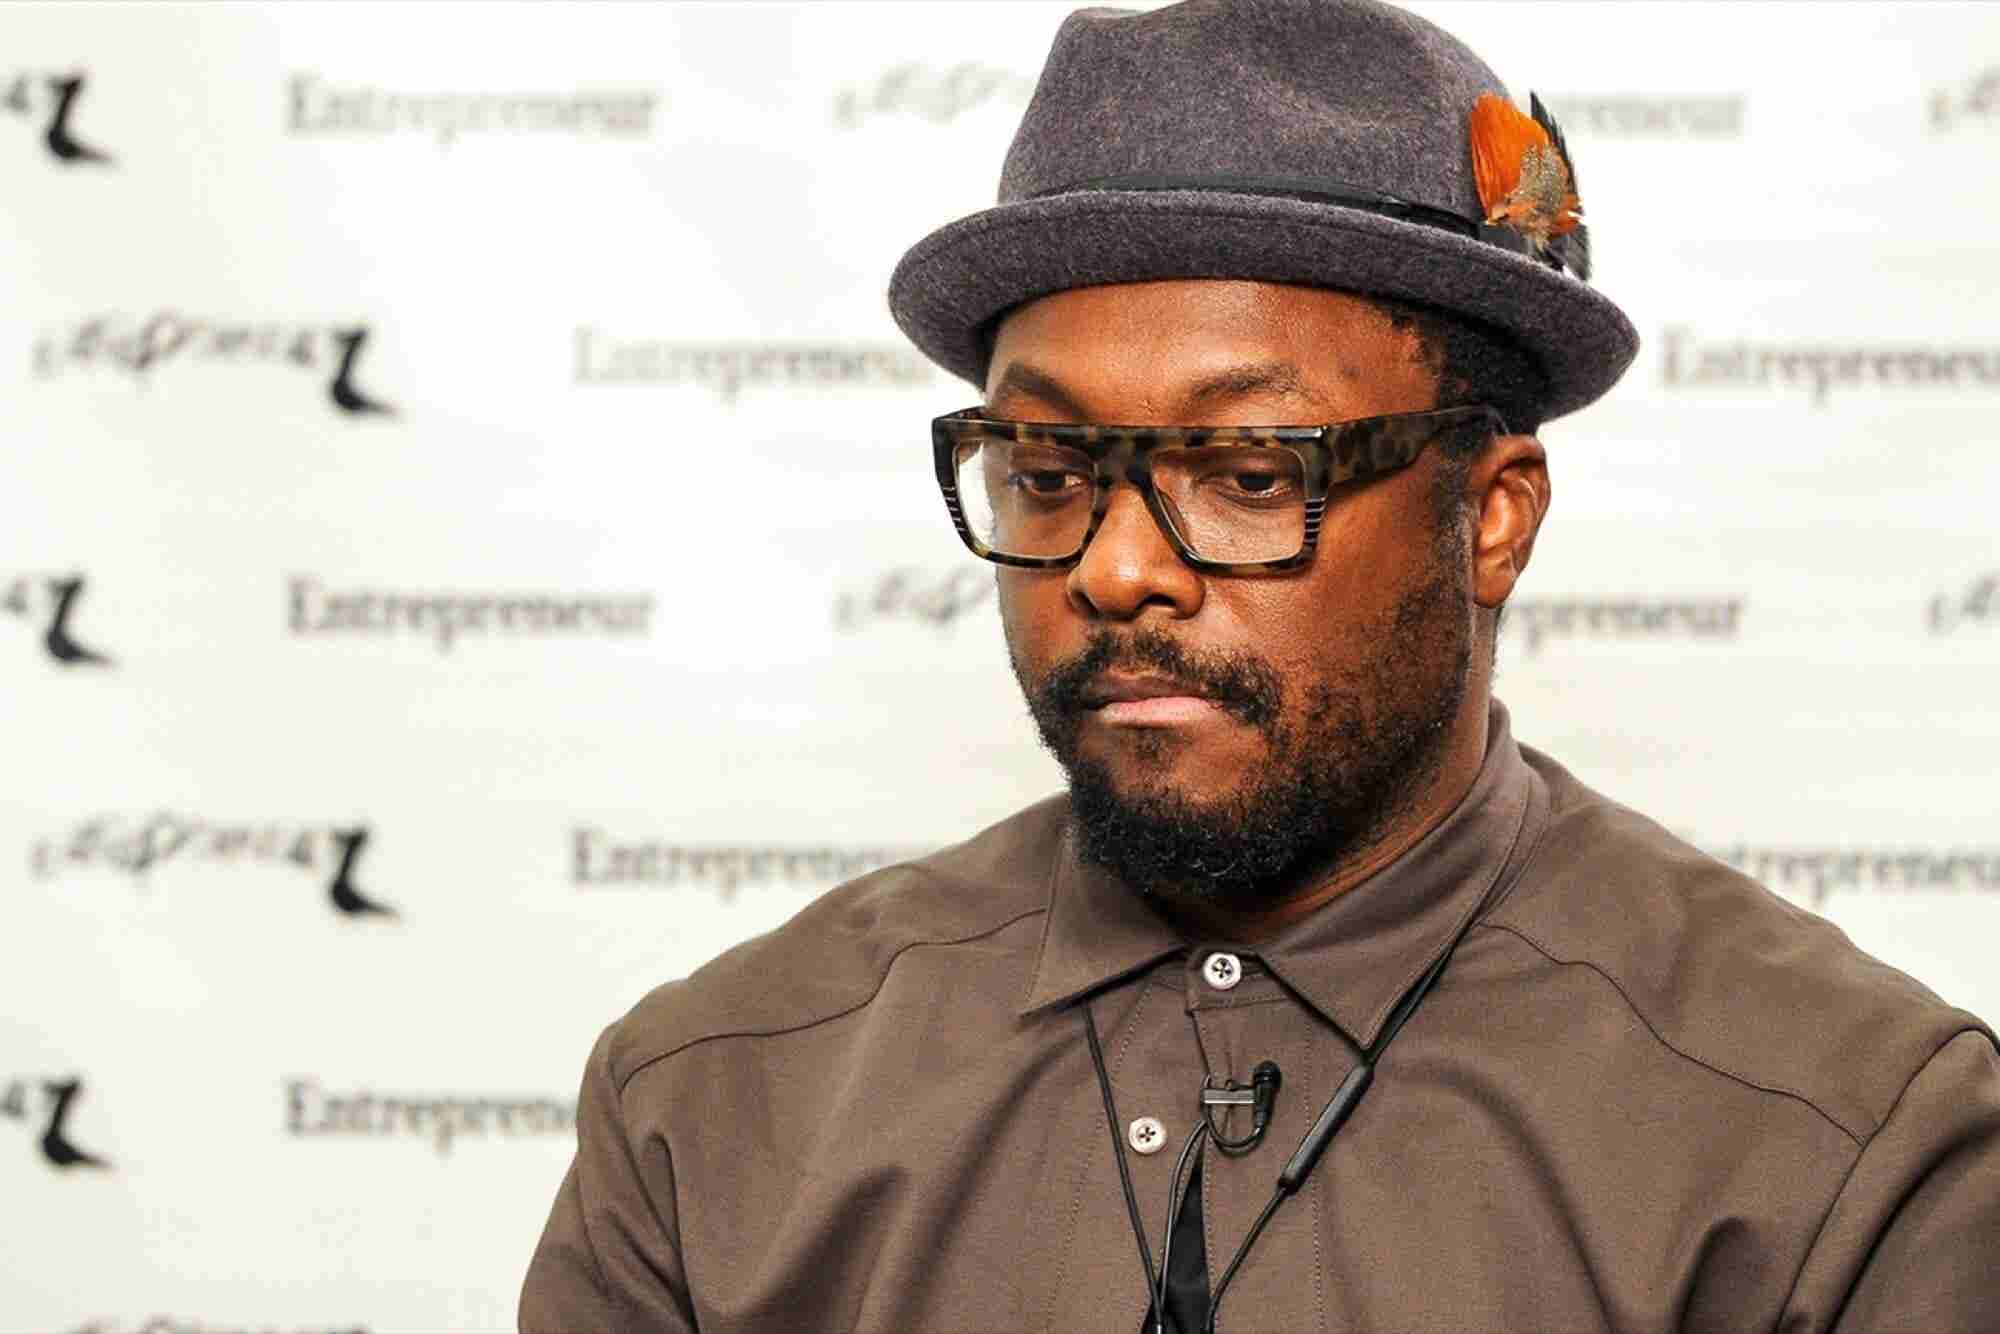 The Most Important Mentor to Have Shaped Will.i.am's Life and Career